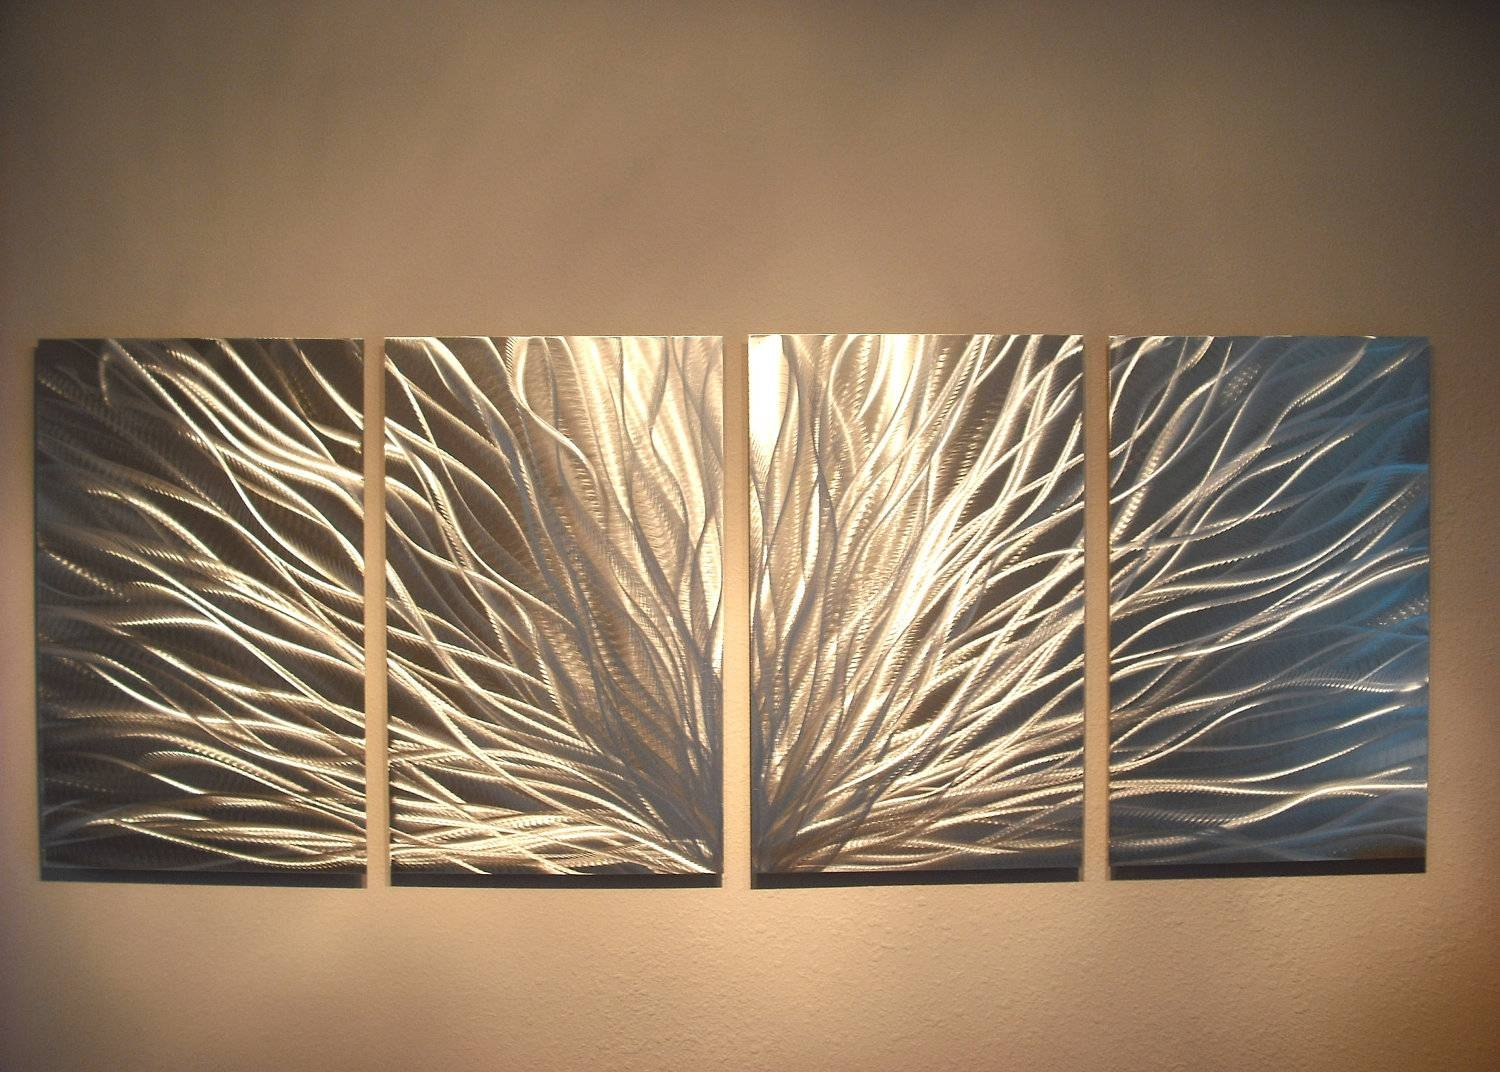 Radiance – Abstract Metal Wall Art Contemporary Modern Decor With Regard To Most Recently Released Contemporary Metal Wall Art (Gallery 4 of 20)